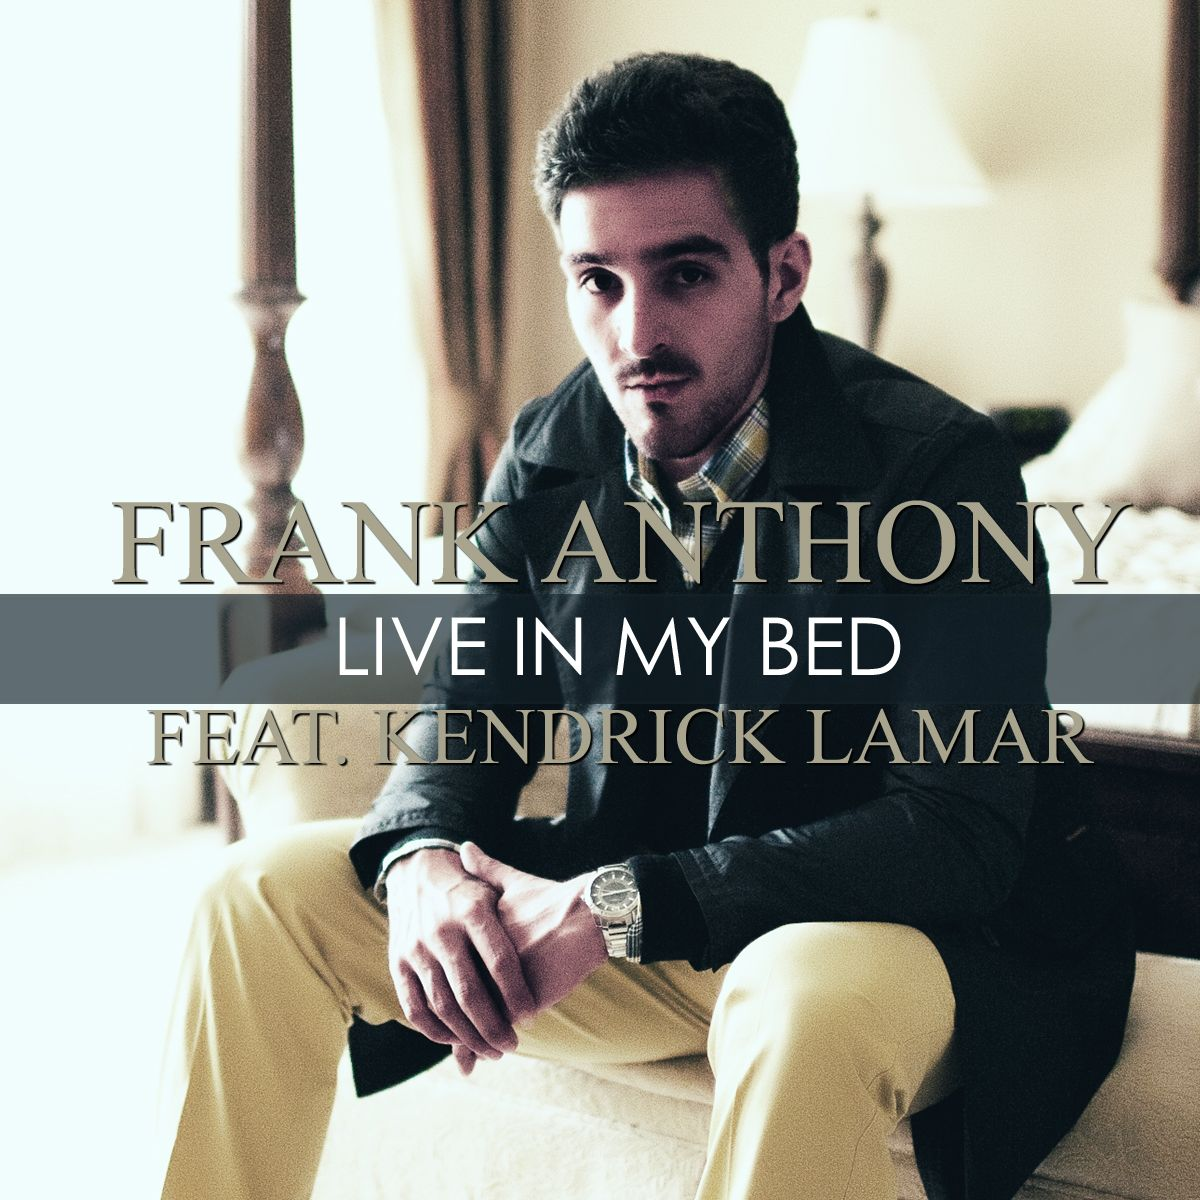 Frank Anthony featuring Kendrick Lamar – Live In My Bed